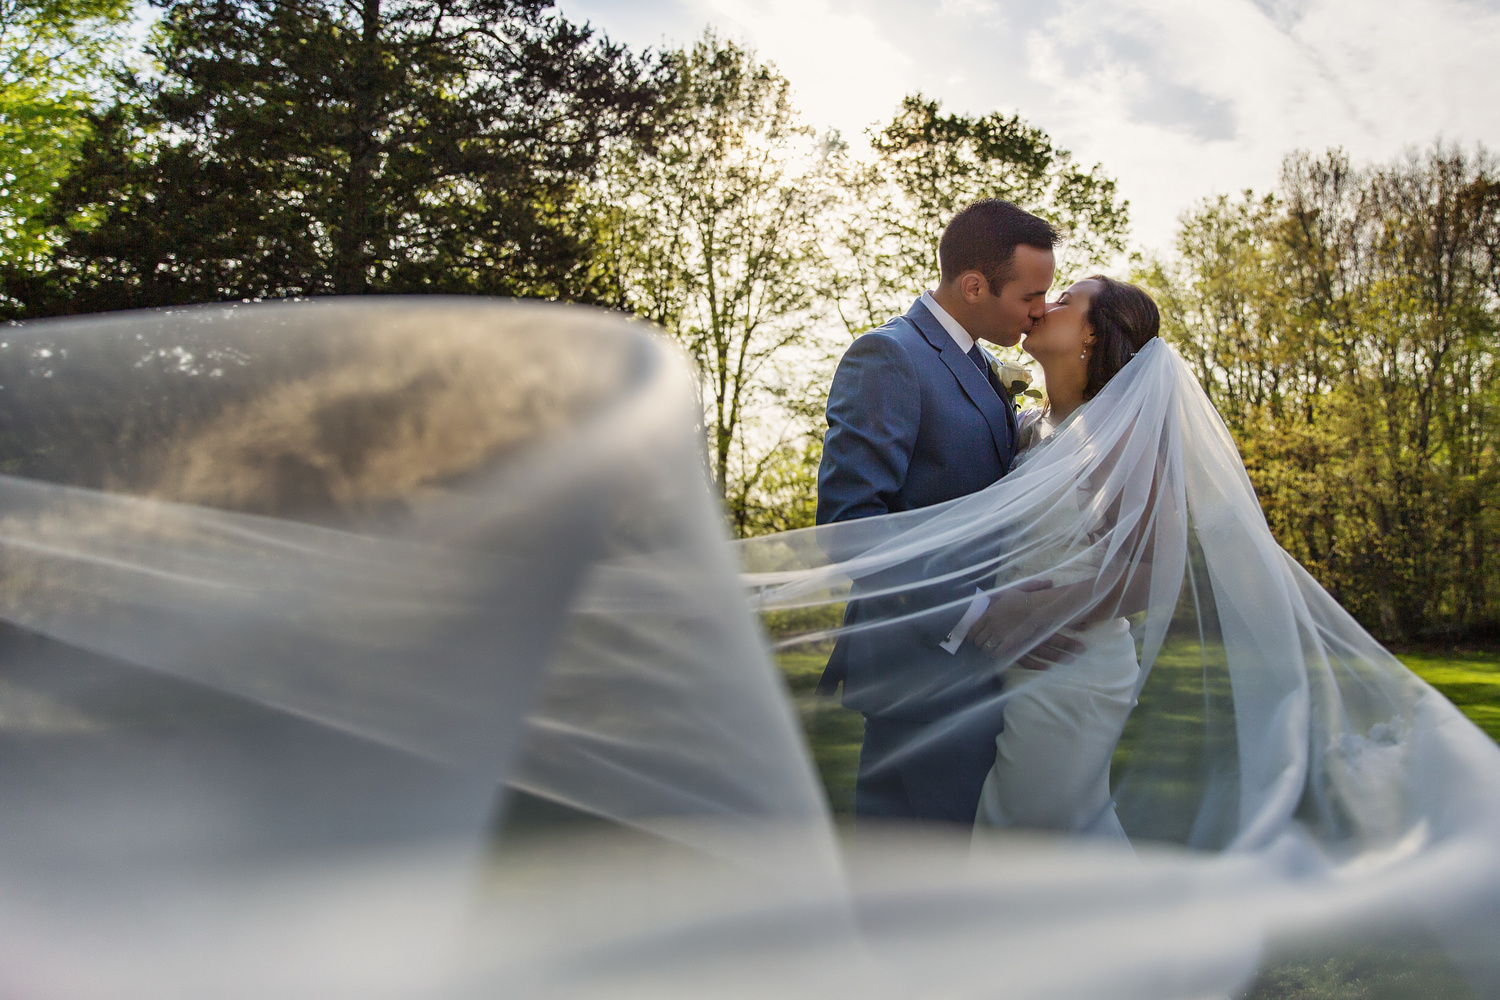 Wedding Veil bouncing around the Couple by Joseph Humphries